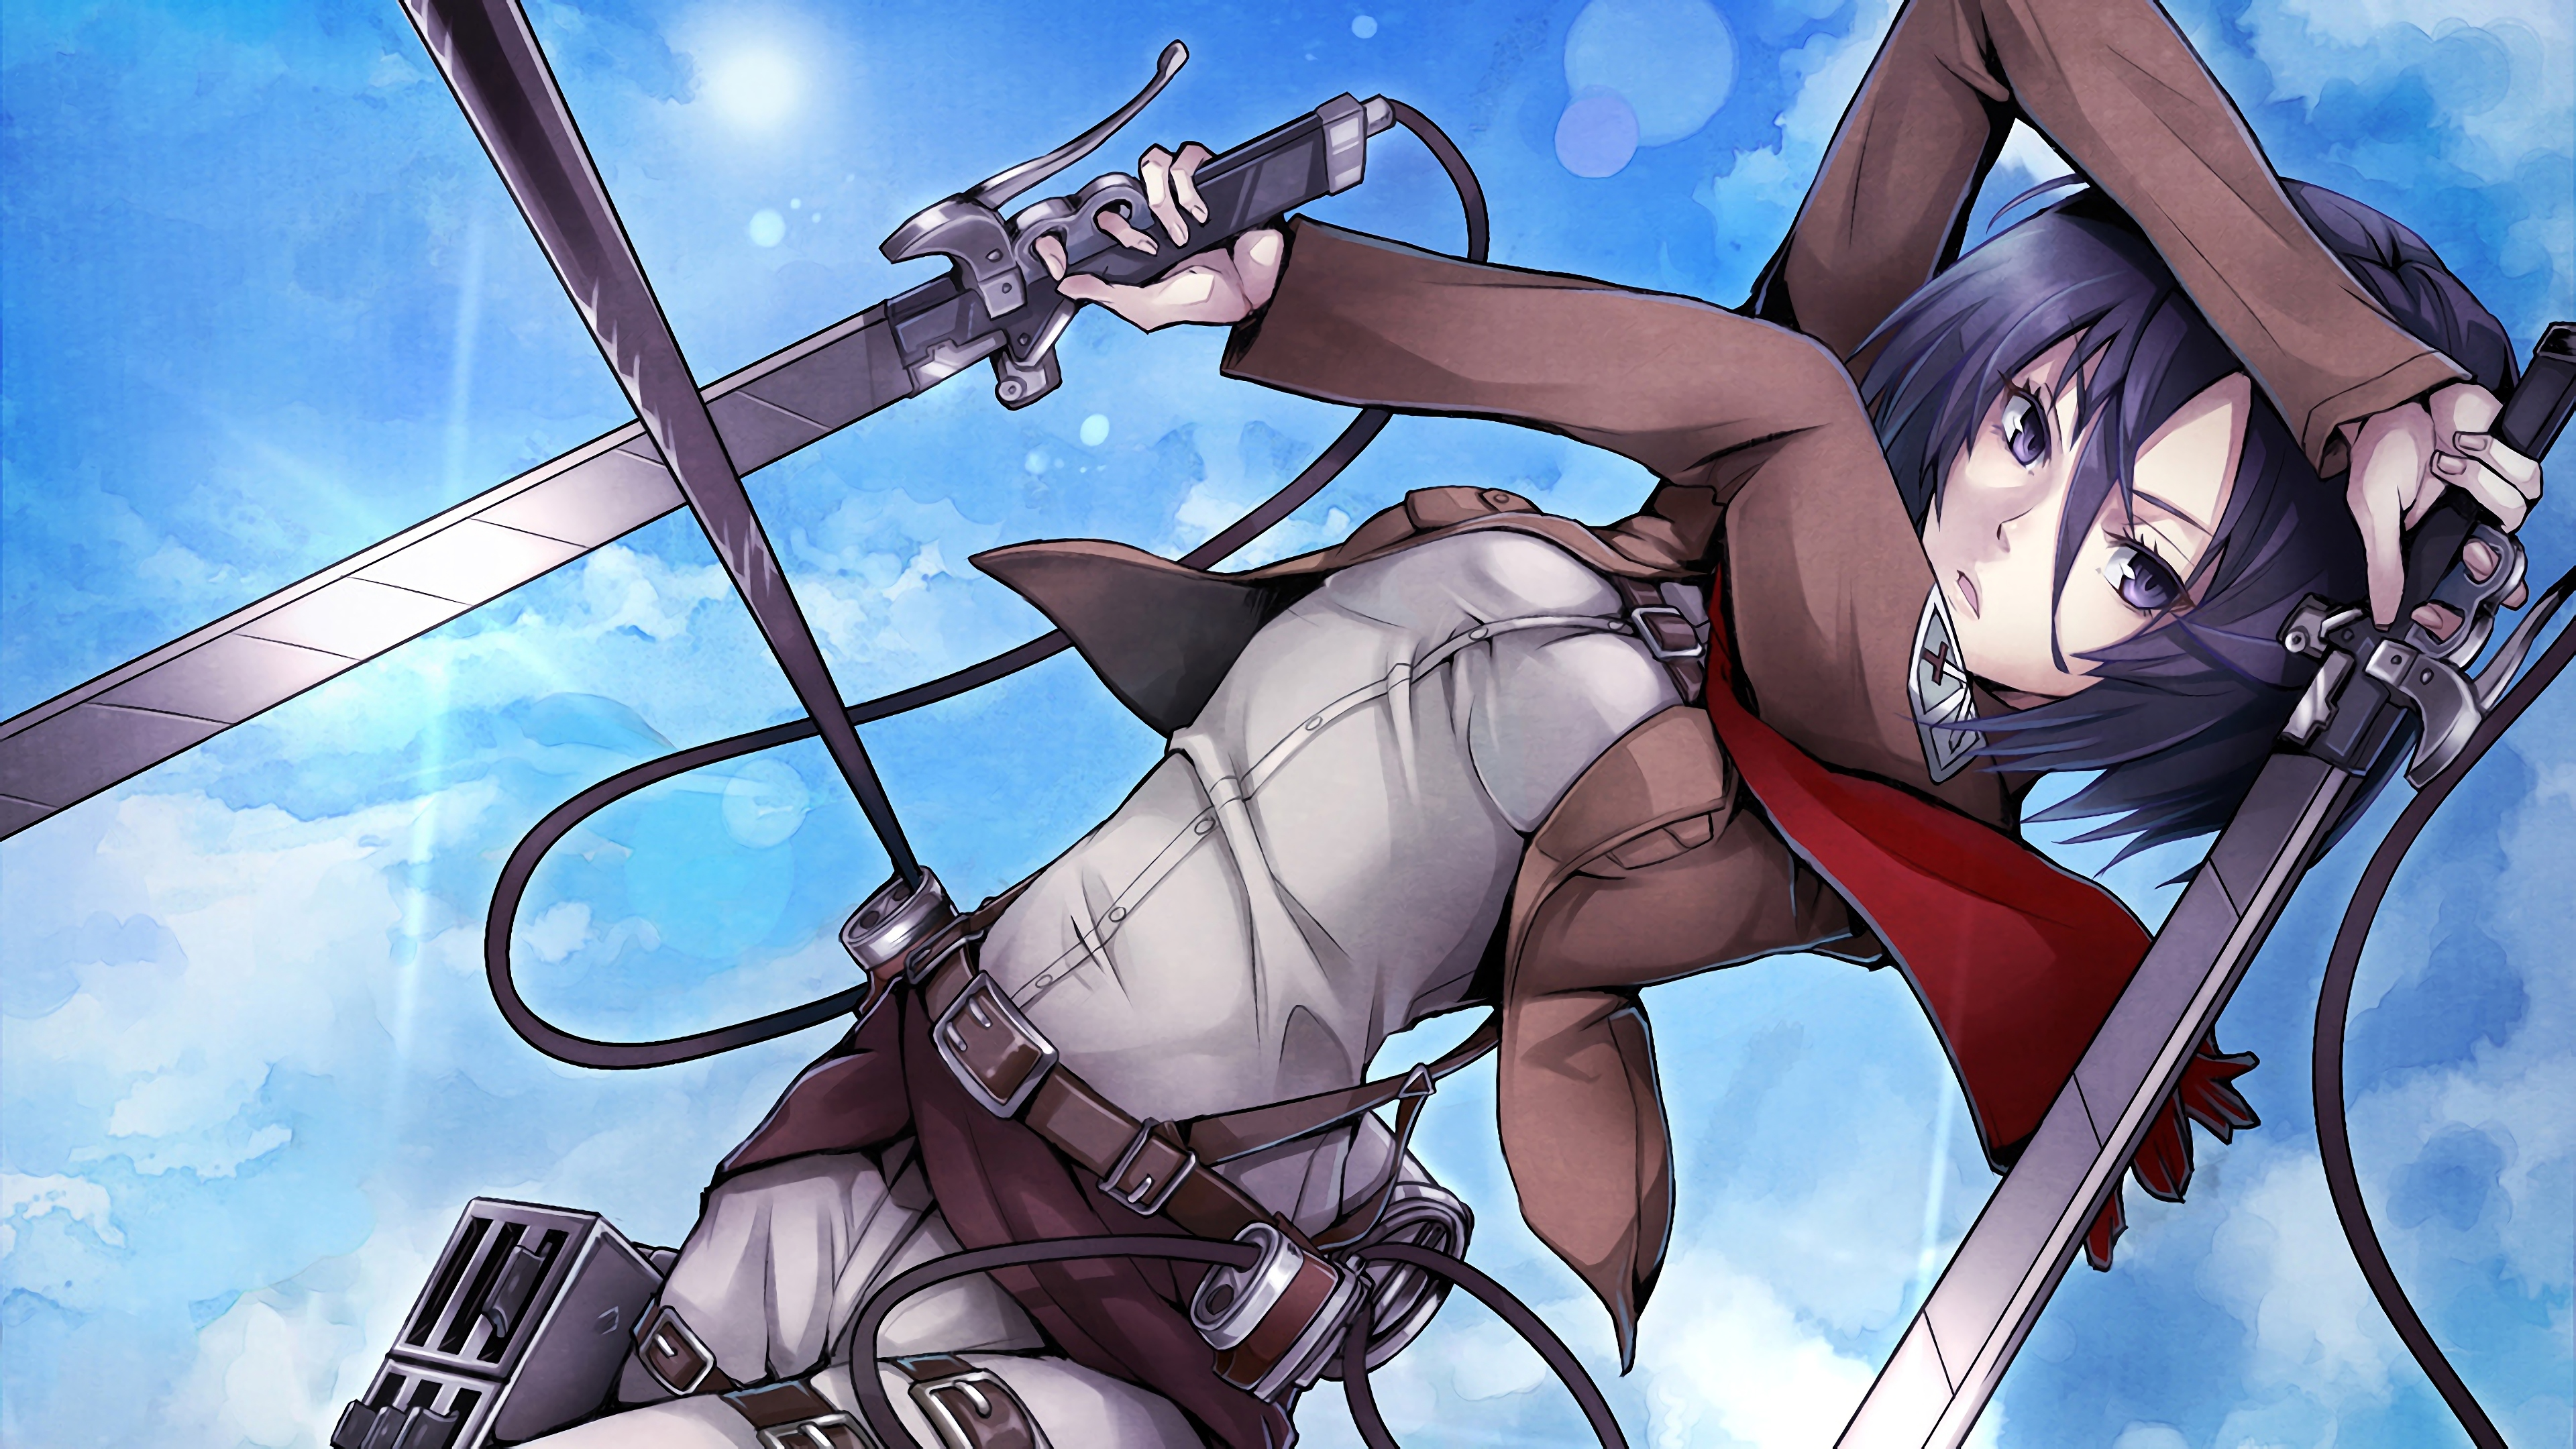 Attack On Titan 4k Ultra Hd Wallpaper Background Image 3840x2160 Id 1016203 Wallpaper Abyss